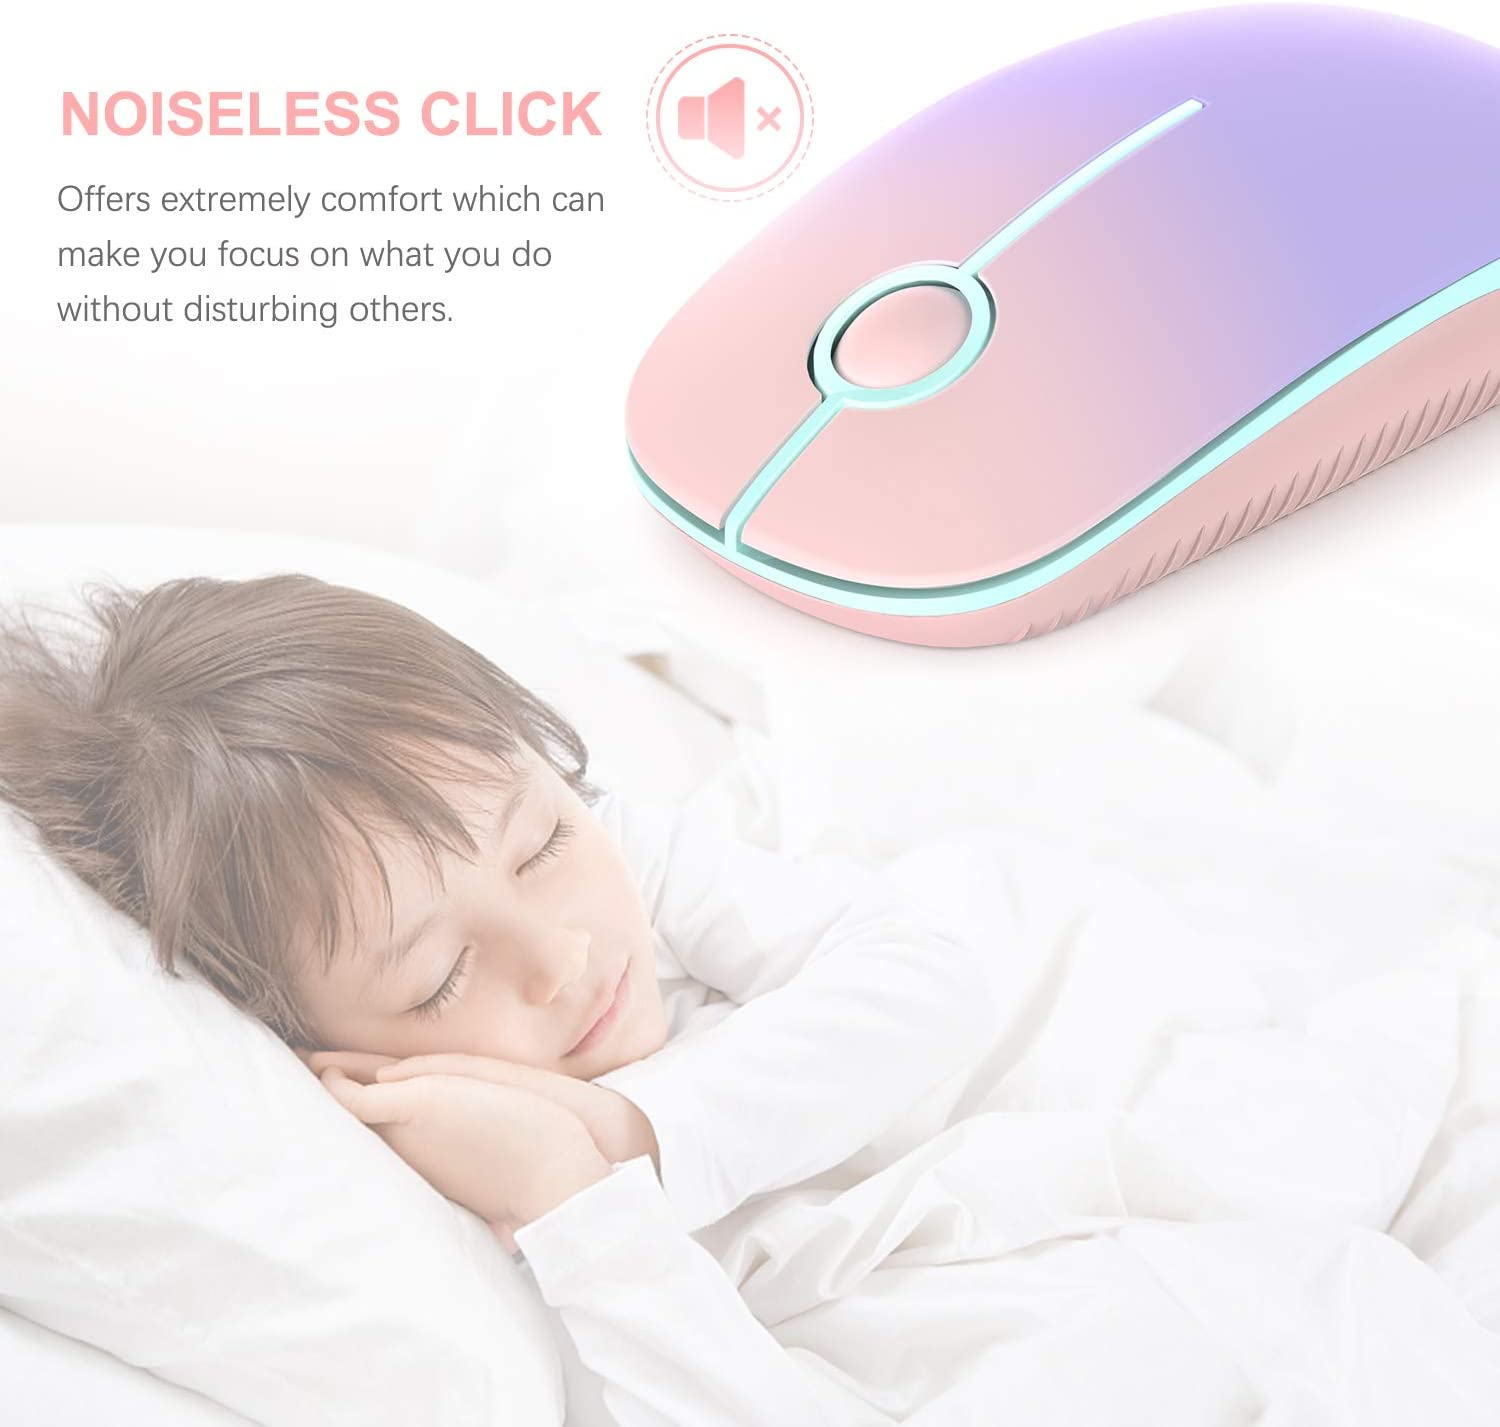 PC Computer Portable Mobile Optical Mice for Notebook Blue MacBook MS001 Laptop Less Noise Jelly Comb 2.4G Slim Wireless Mouse with Nano Receiver